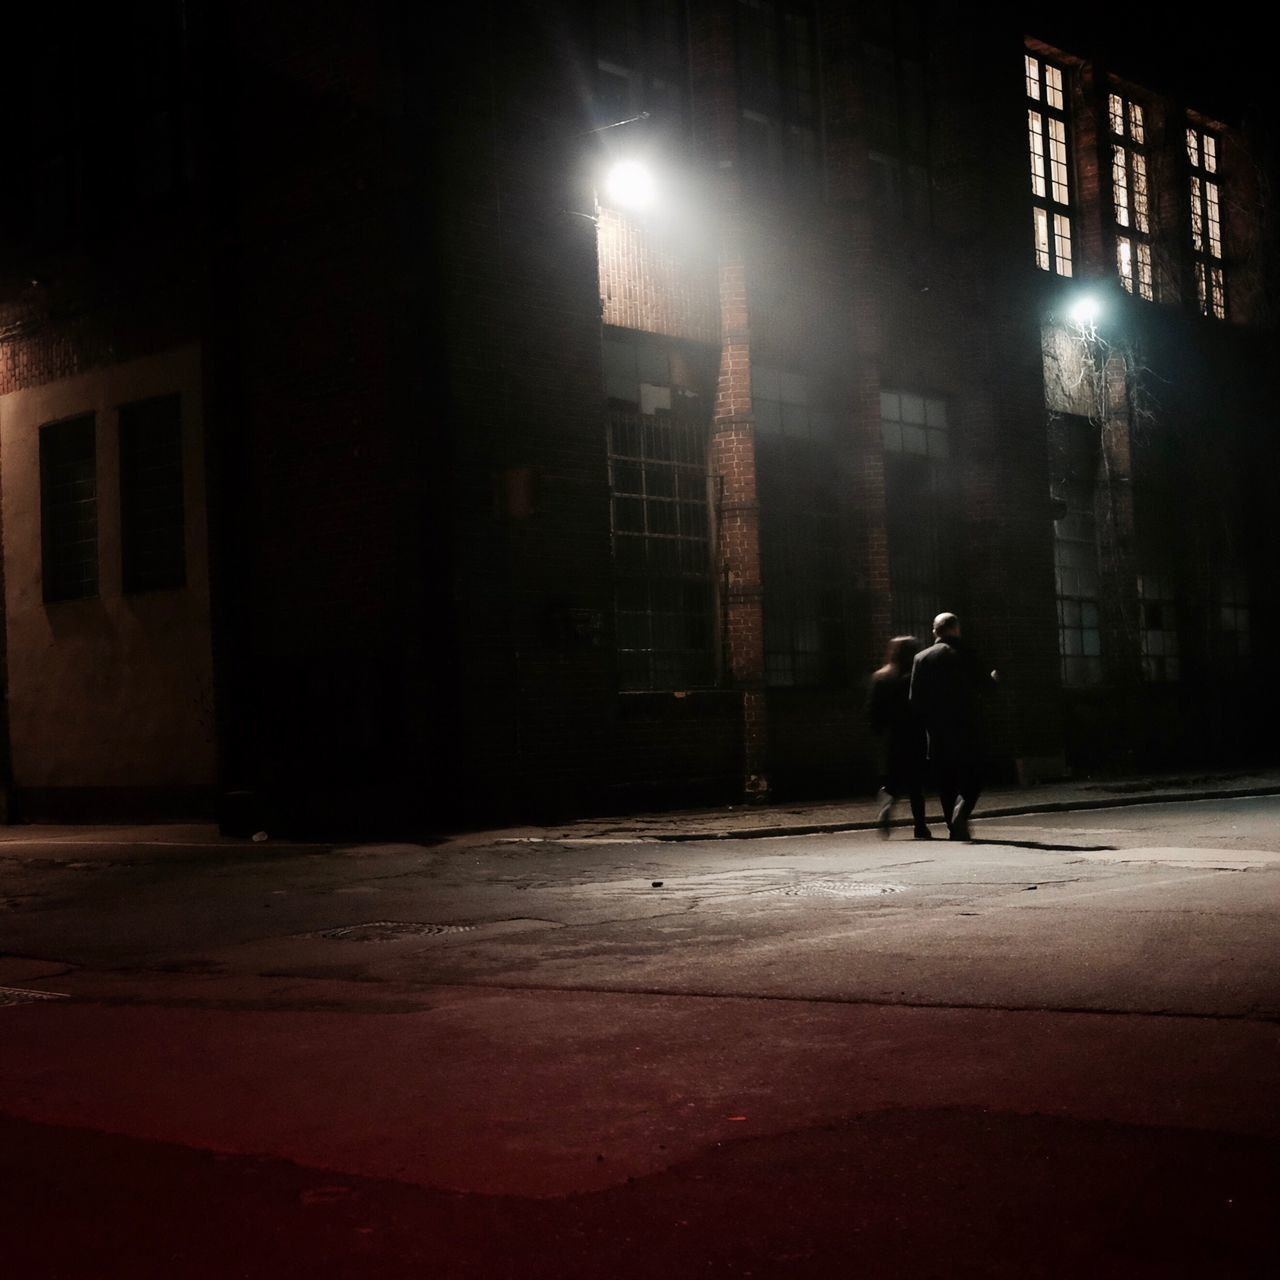 Night Built Structure Moody Real People One Person Illuminated Architecture Men Building Exterior Outdoors One Man Only Couple Nightphotography Night Lights